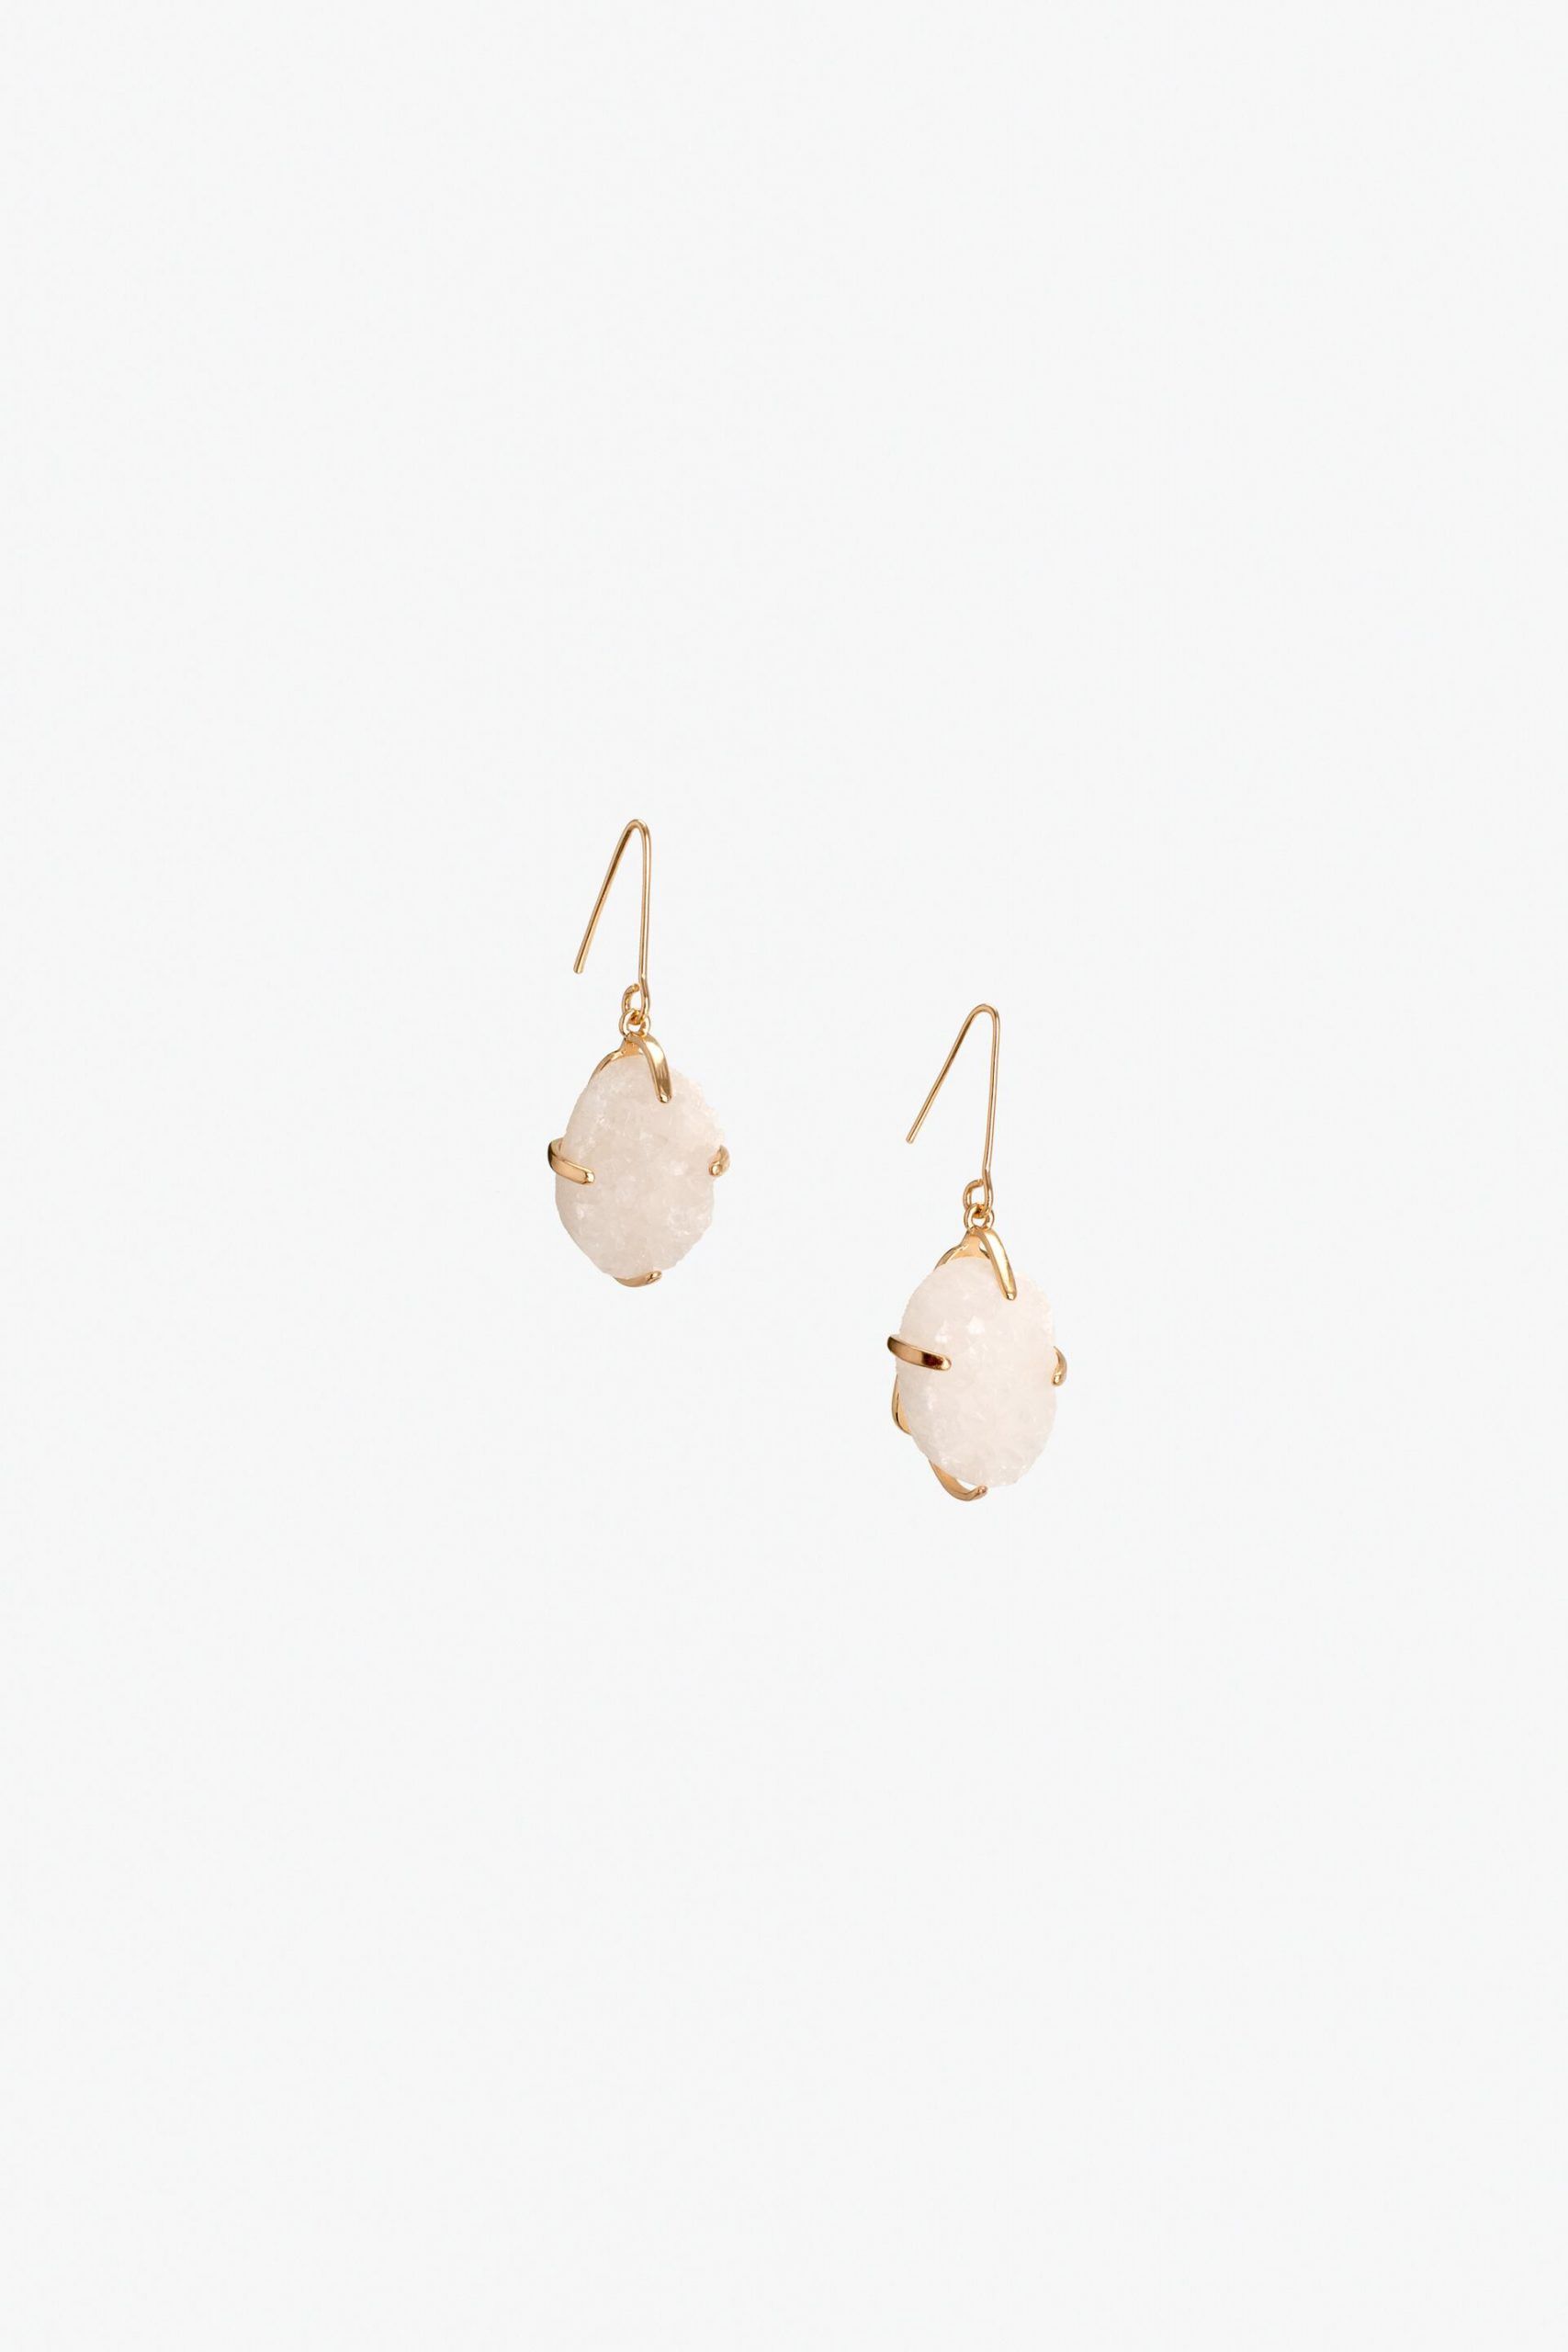 Small gold and rose quartz drop earrings